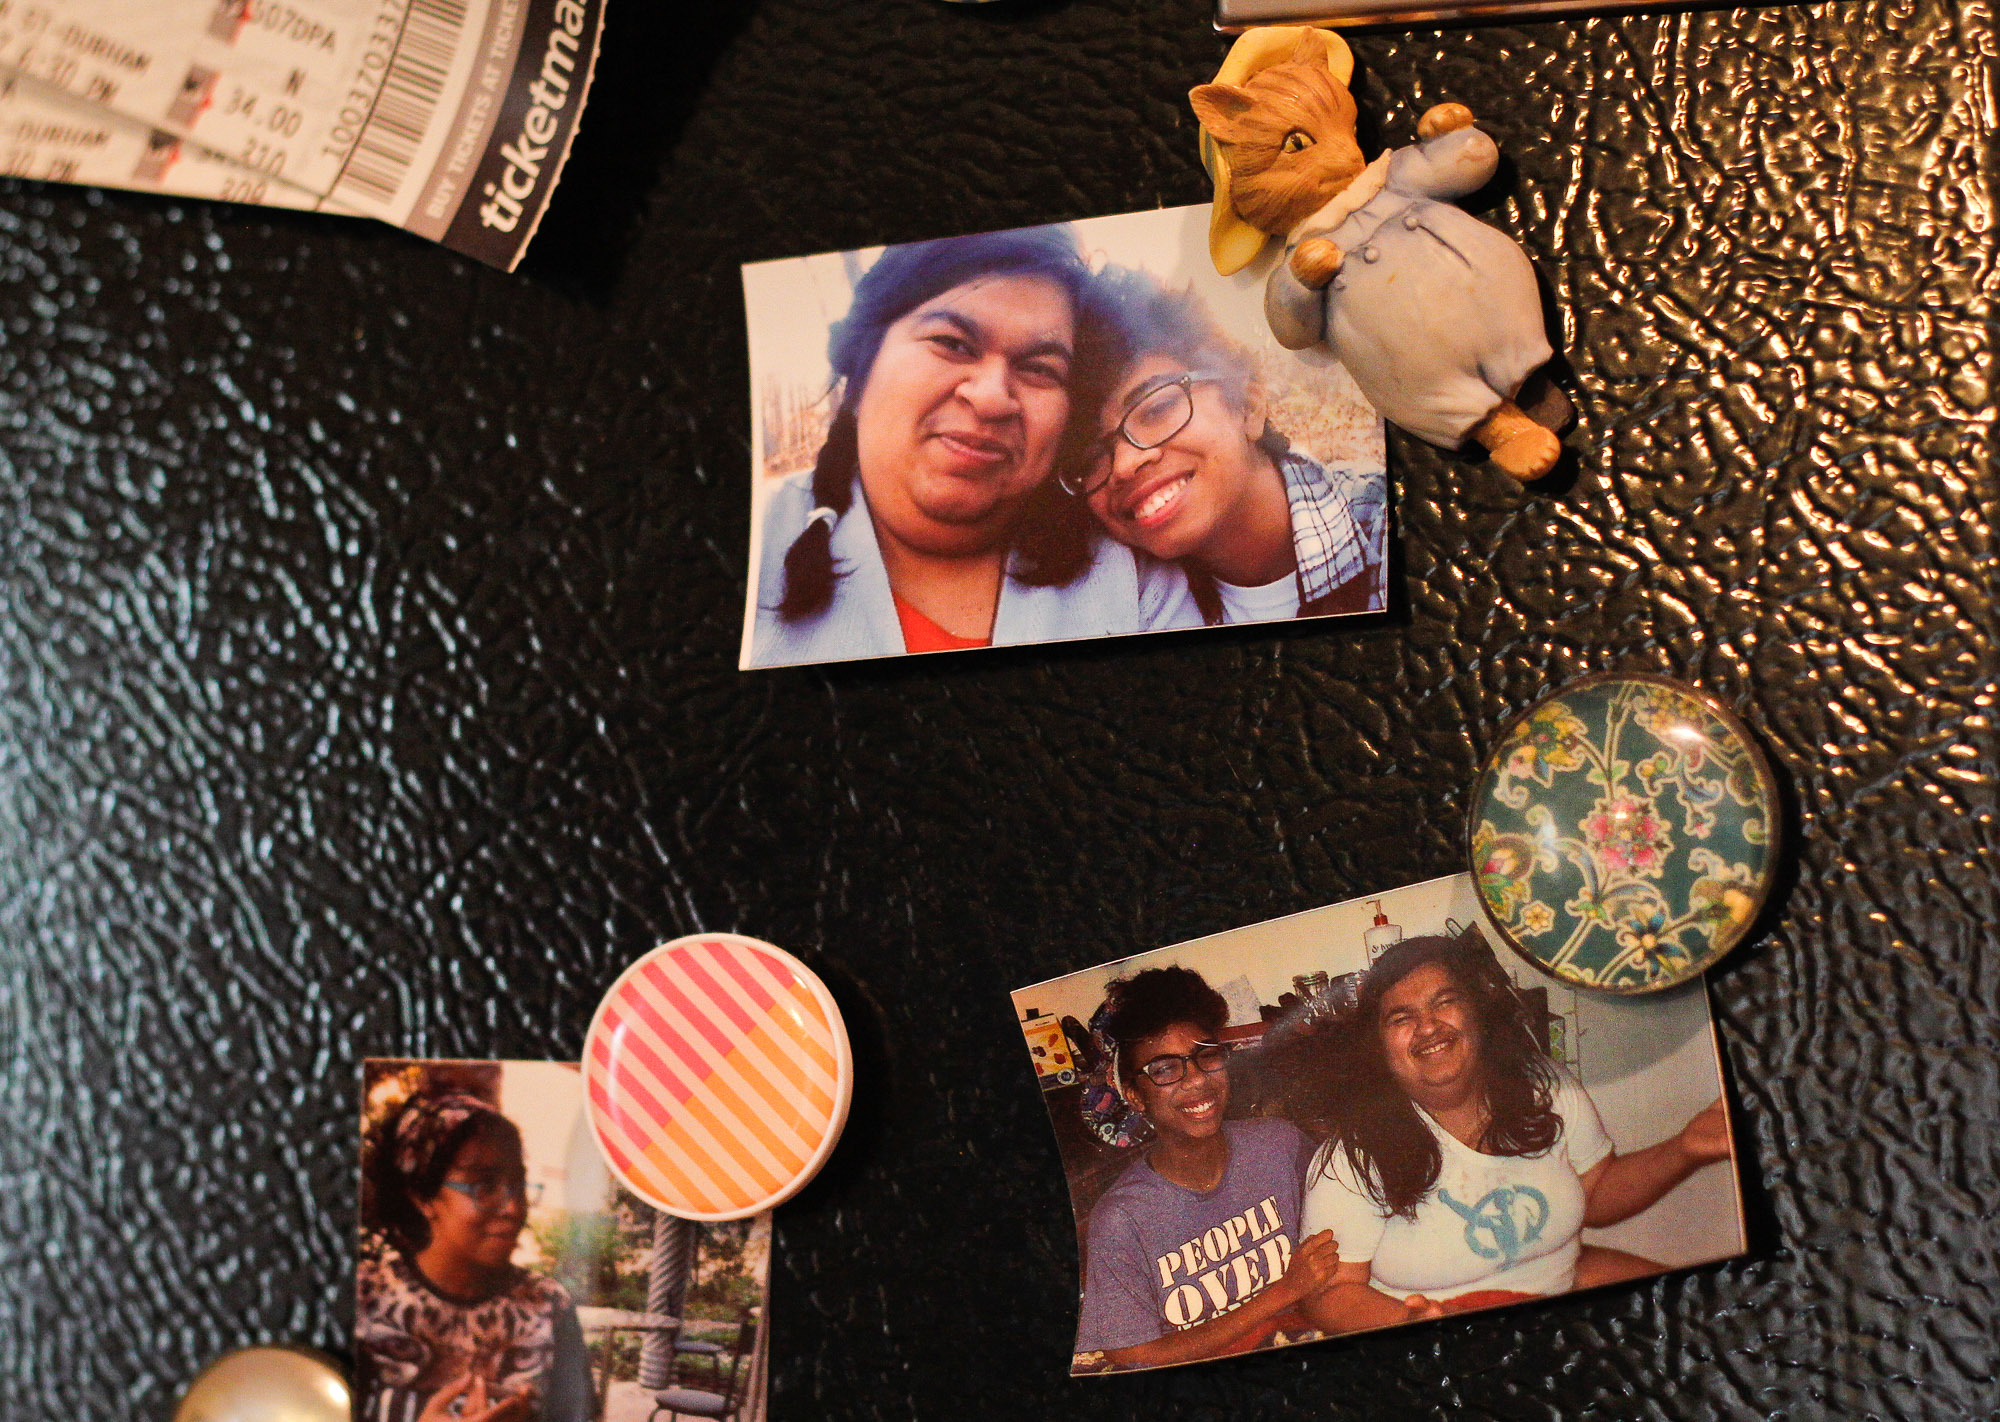 Photographs of Panjwani and Wideman decorate the surface of a black refrigerator.